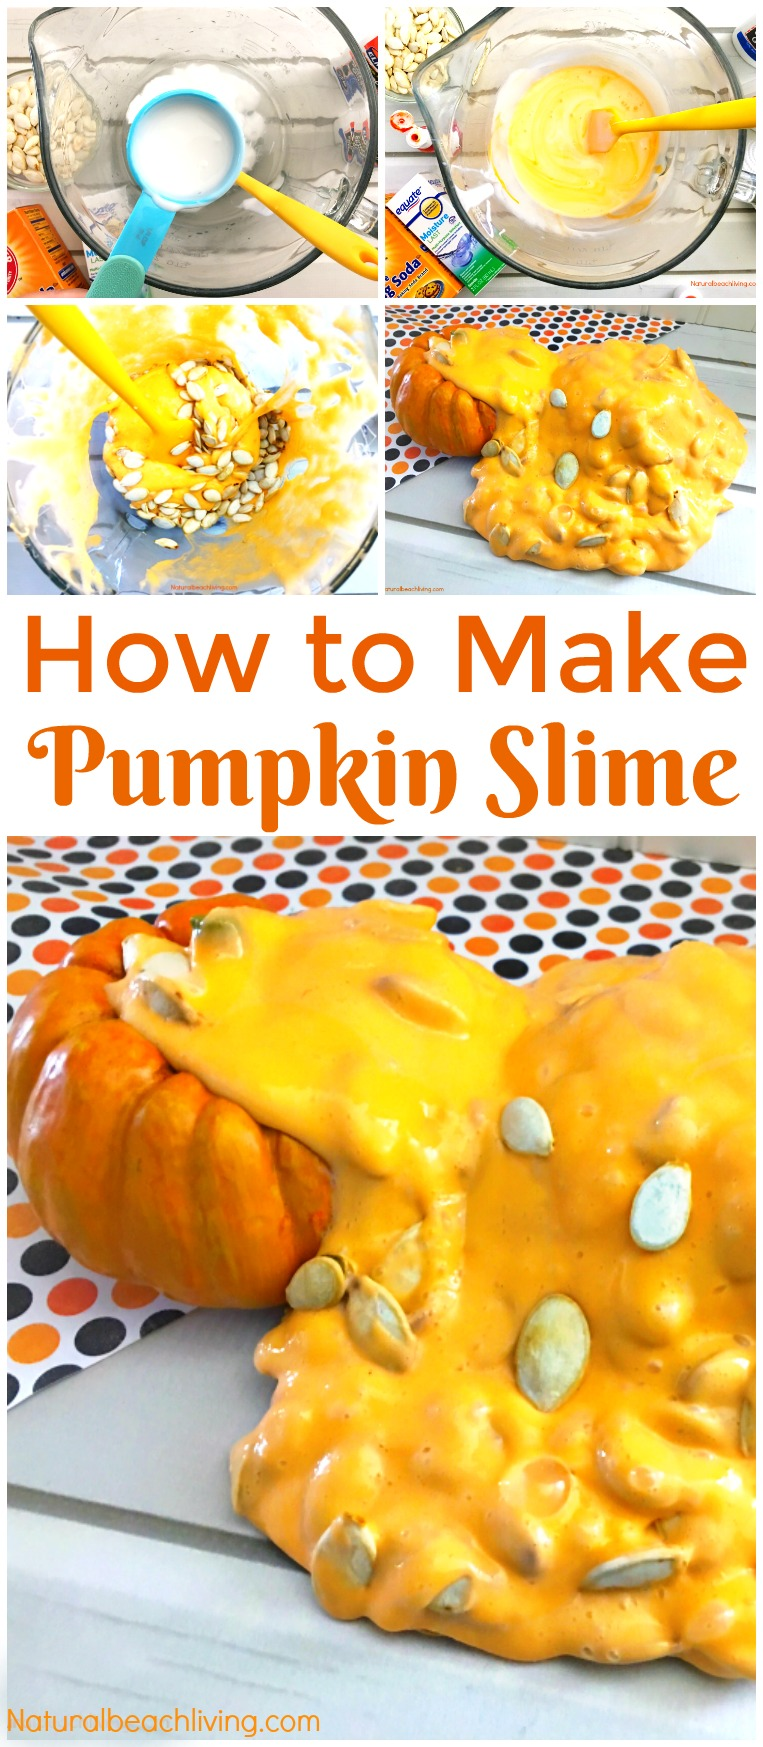 These Potato Stamping Pumpkins are so cute and make a perfect Halloween craft for toddlers and preschoolers, Easy Preschool Jack o Lantern Craft or Potato Stamping Art for Toddlers and Preschool. Fall Preschool Activity for Fine Motor Skills and SLIME